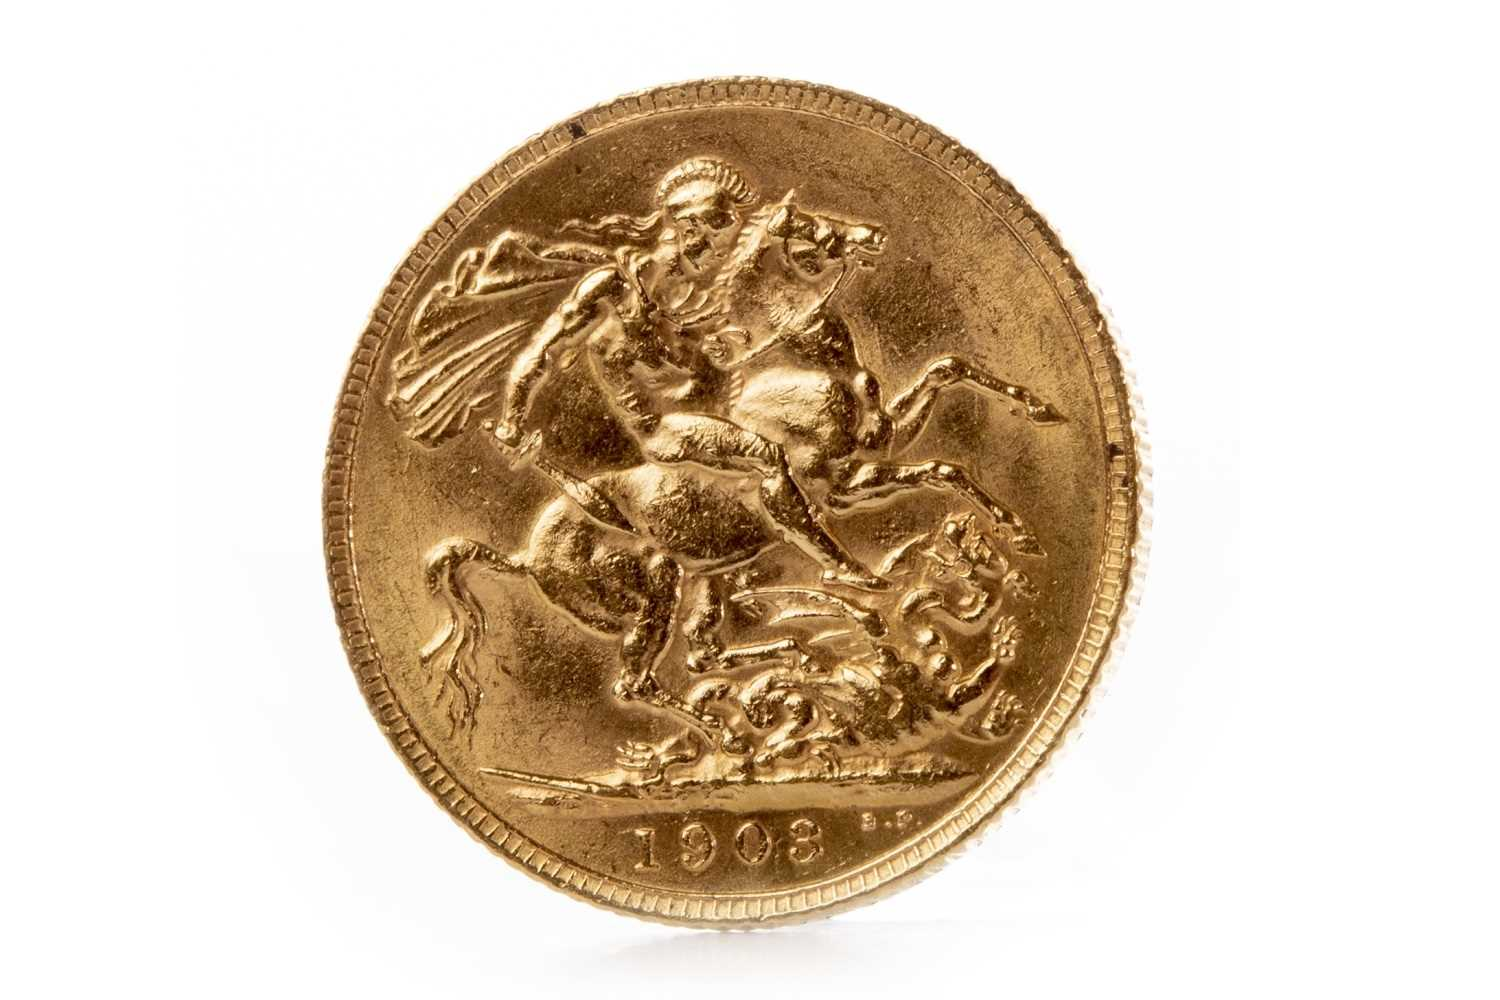 Lot 542 - A GOLD SOVEREIGN, 1903